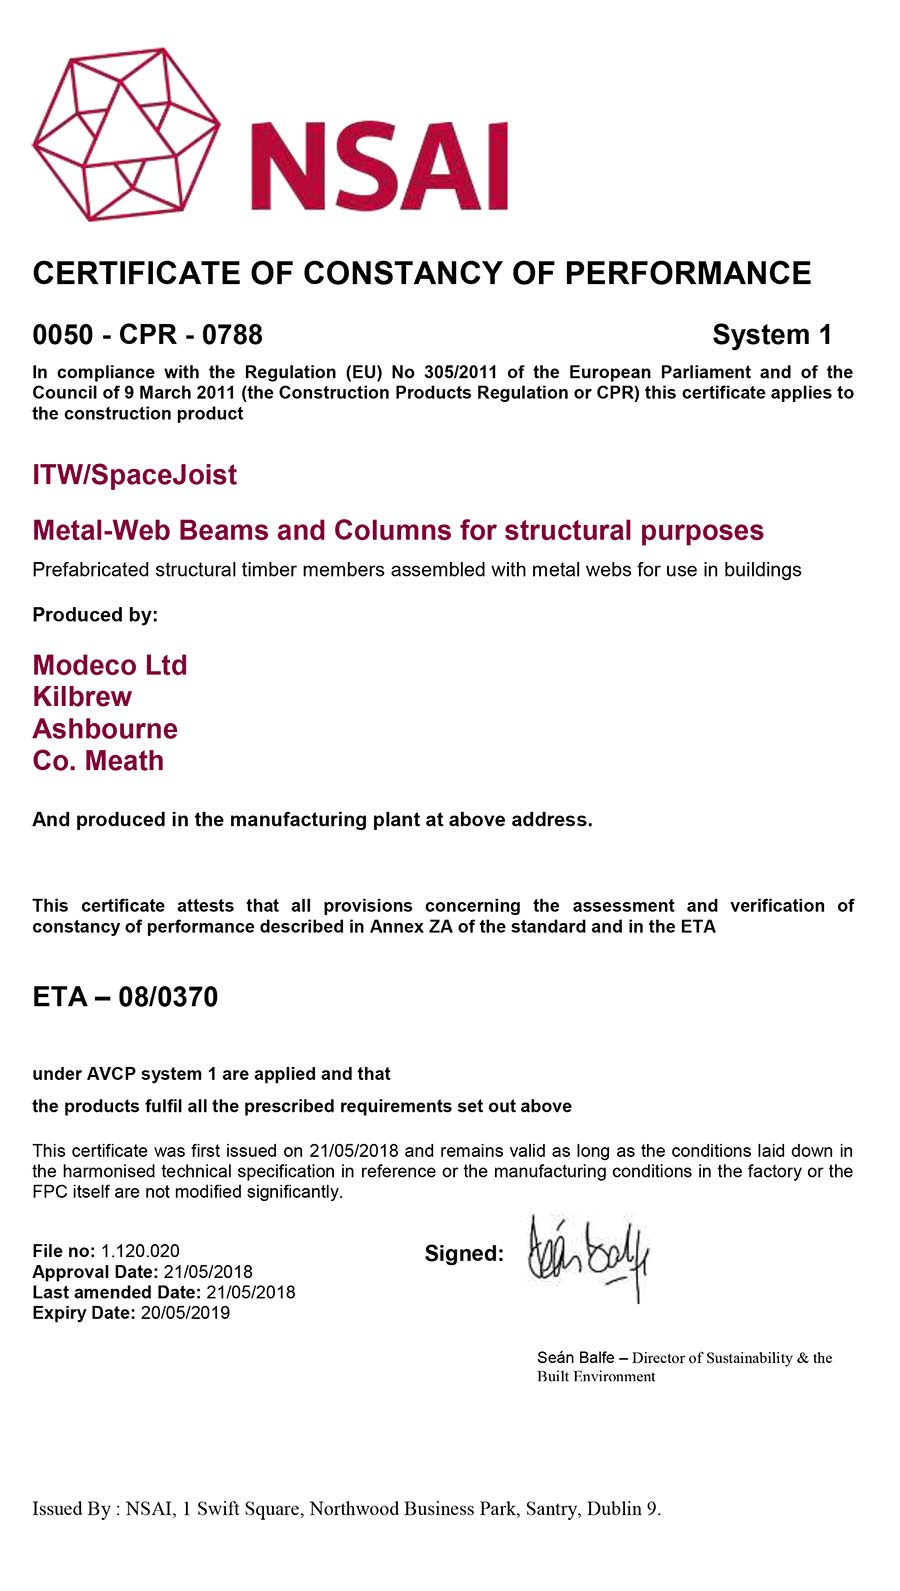 NSAI Modeco Ltd Certificate of Constancy of Performance Metal Web Joists